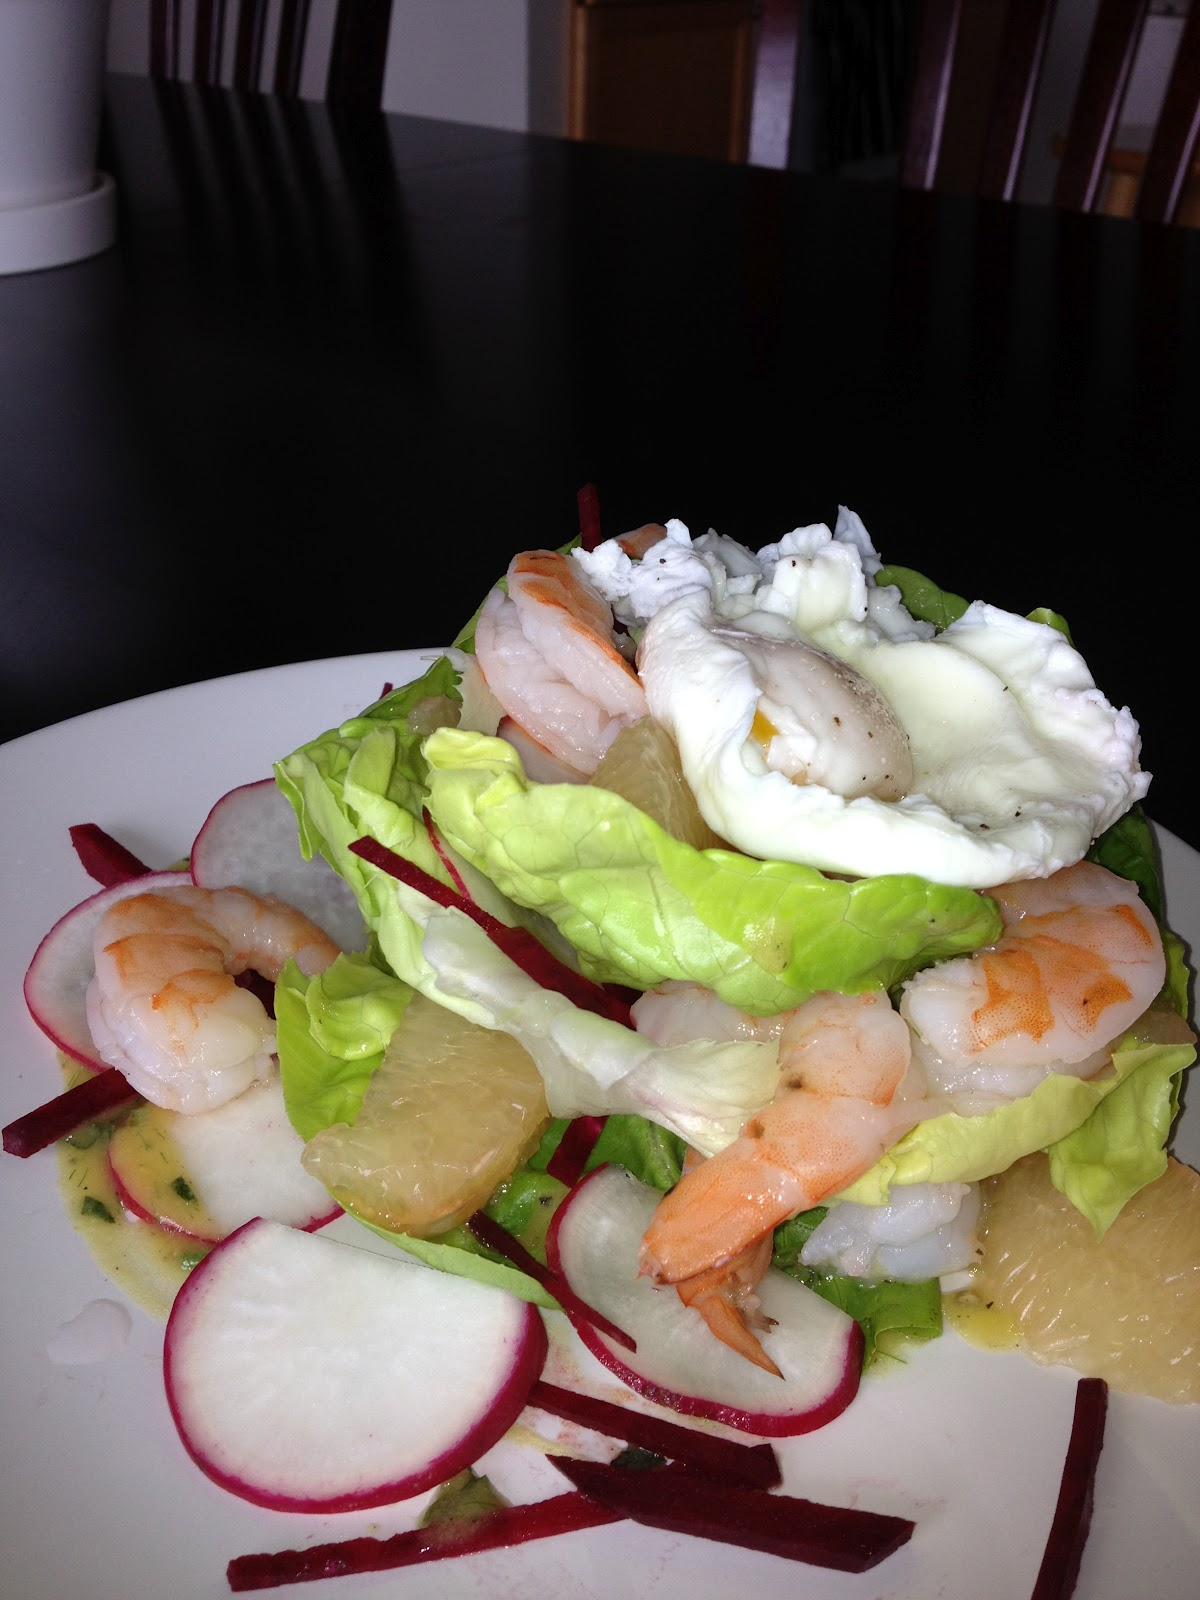 ... Epicurious...: Citrus Butter Lettuce Salad with Poached Prawns